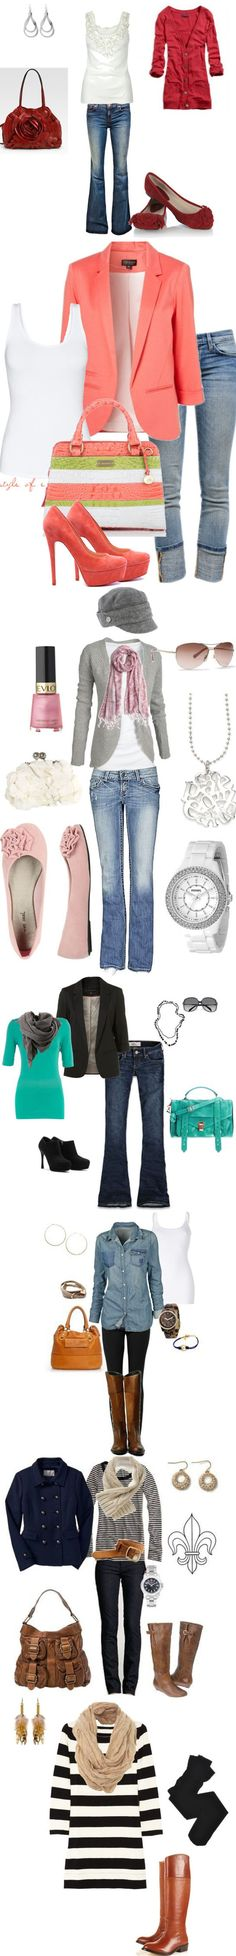 26+Cute+Fall+Fashions!